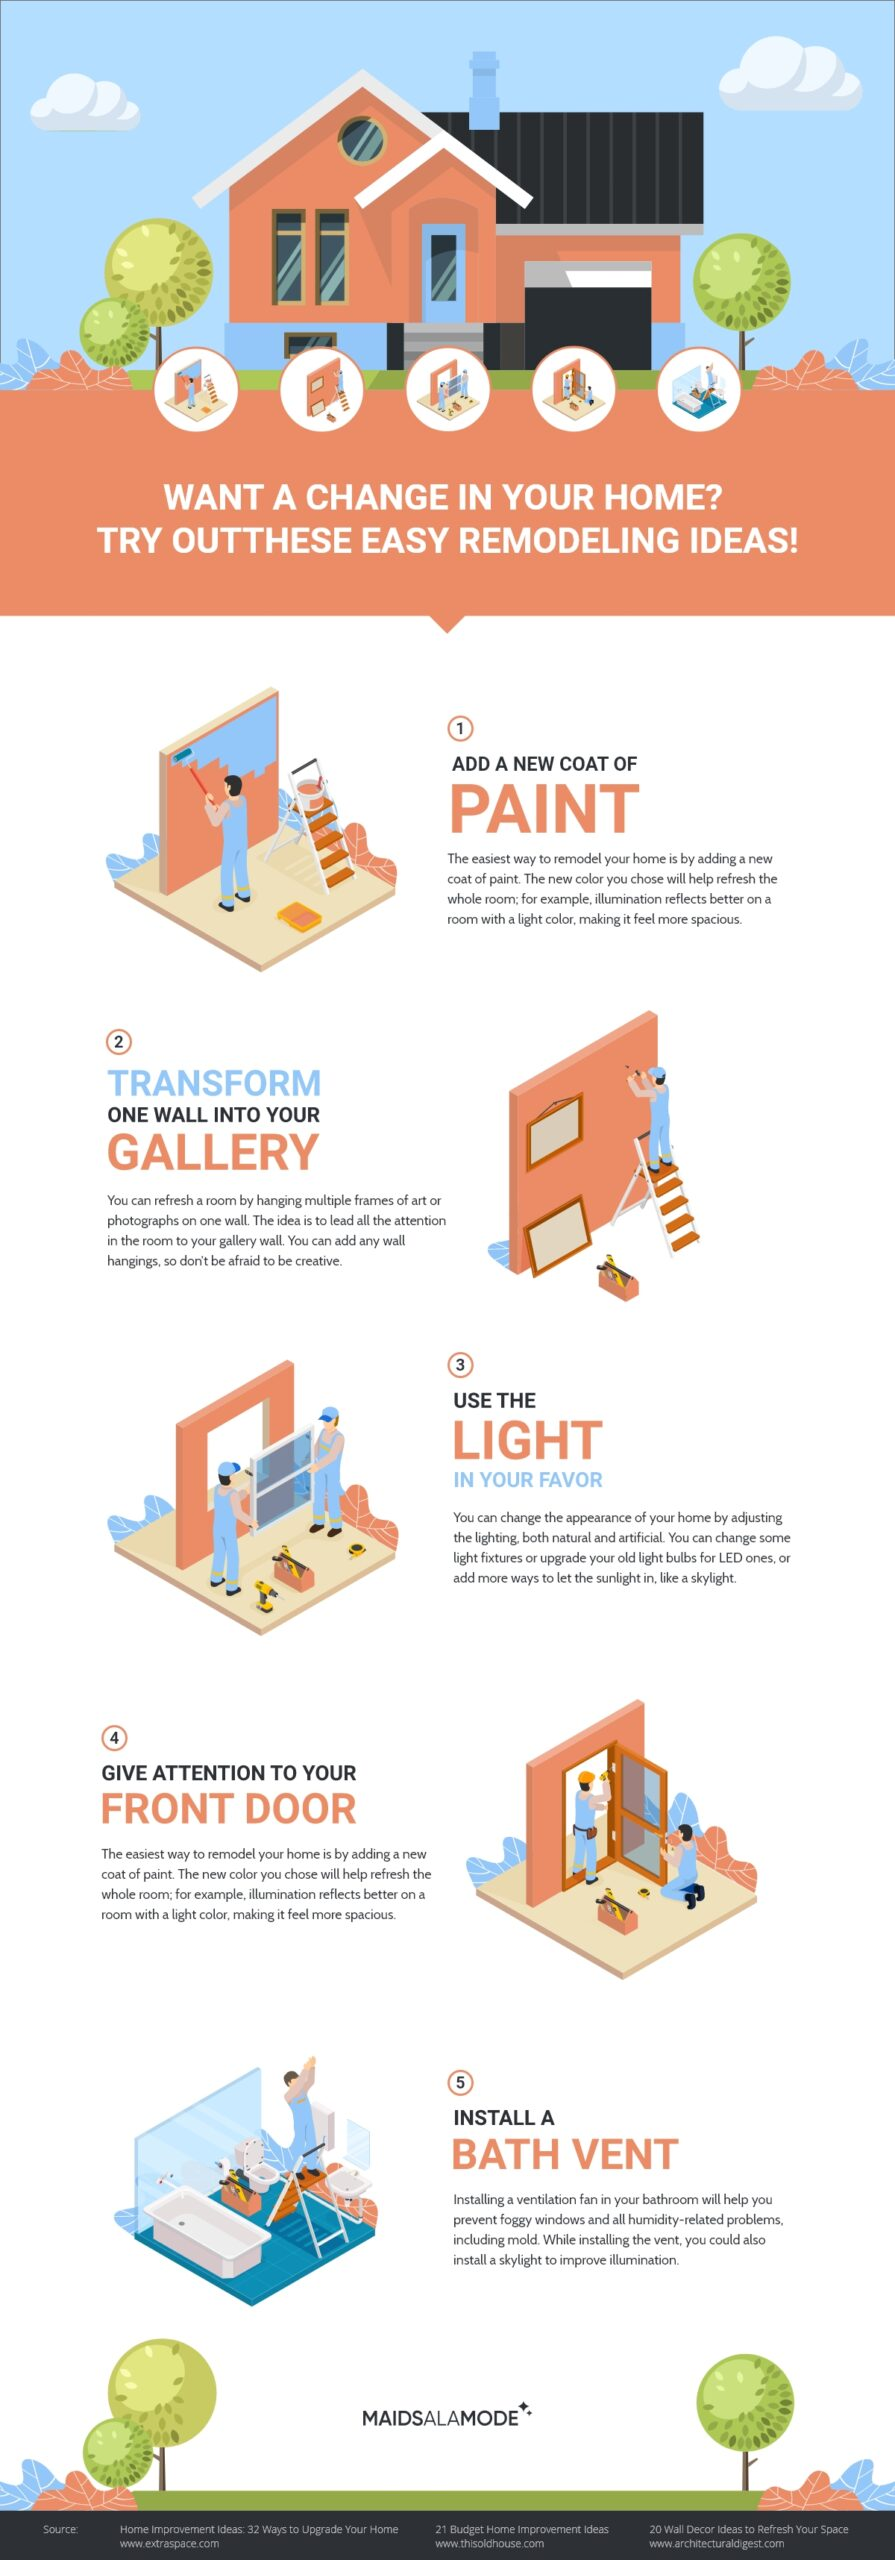 Easy Remodeling Ideas Infographic